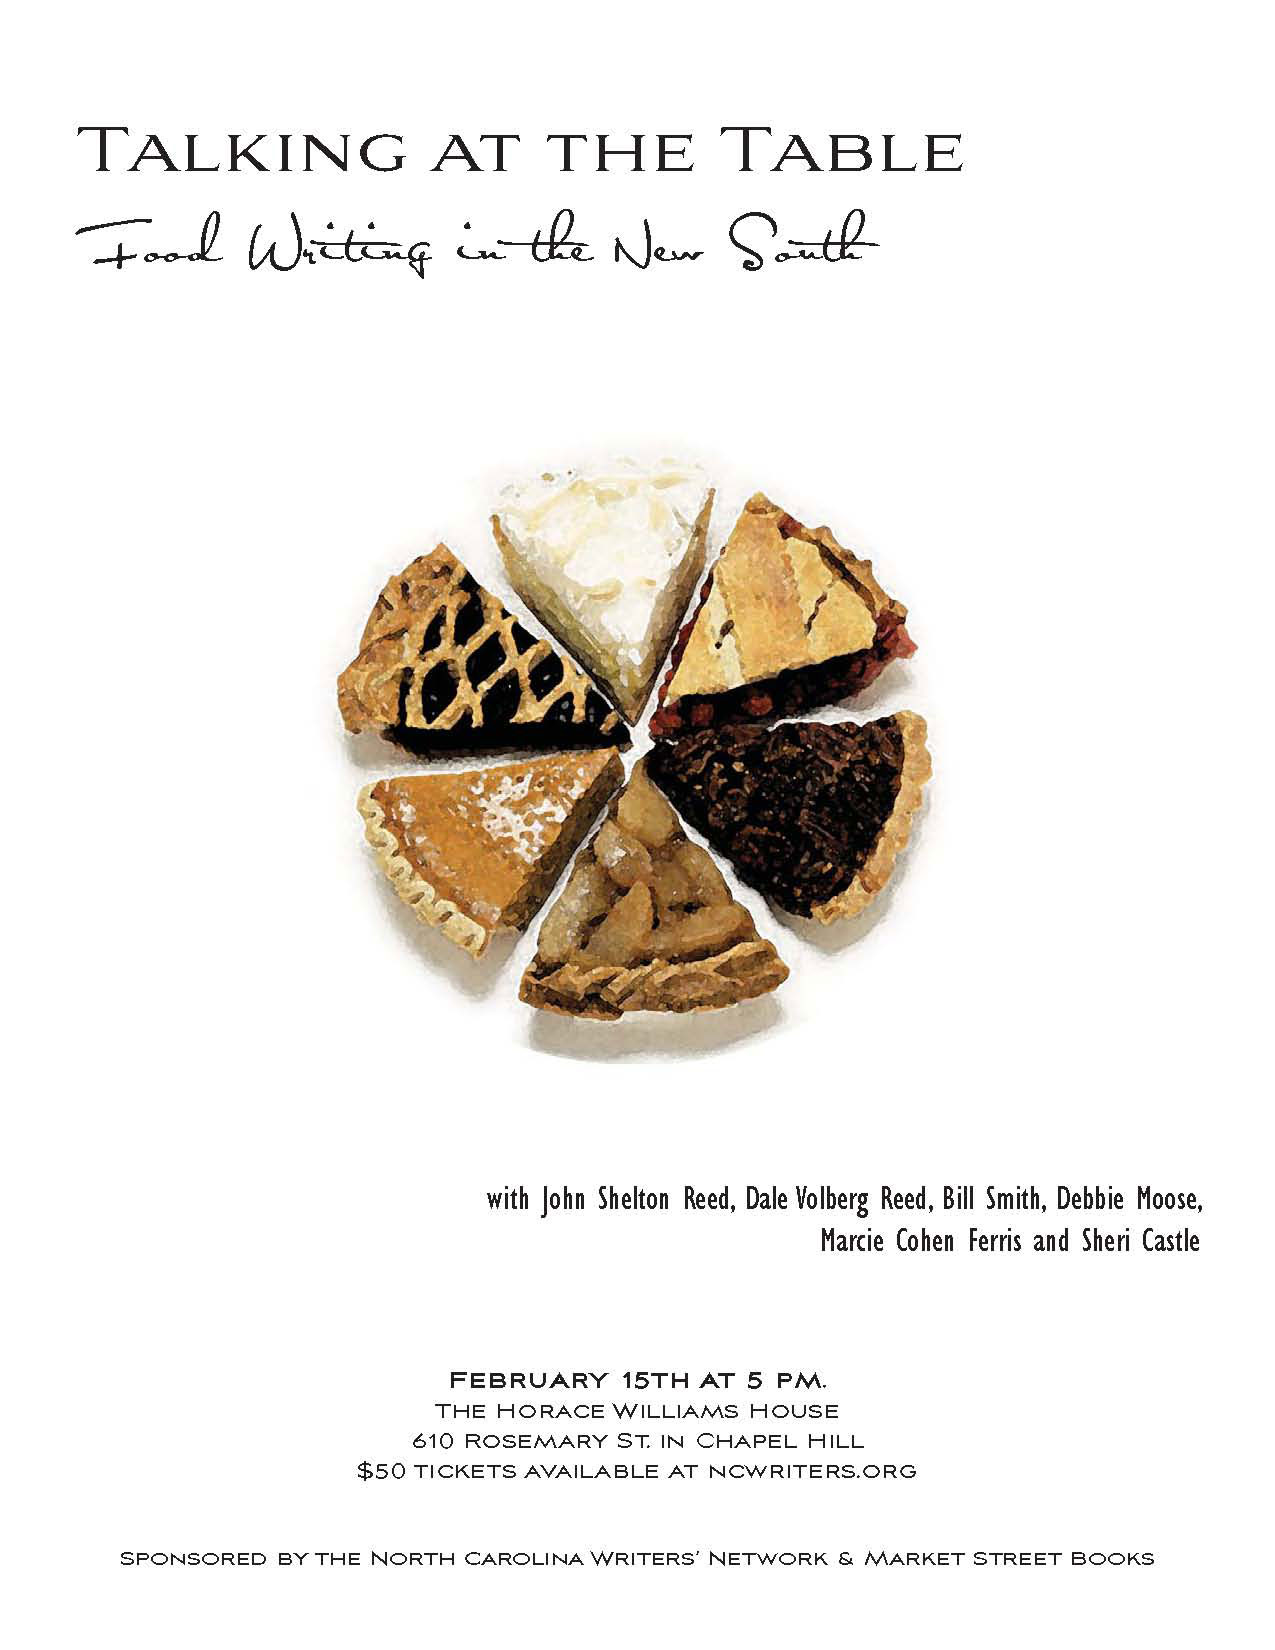 Talking at the Table: Food Writing in the New South